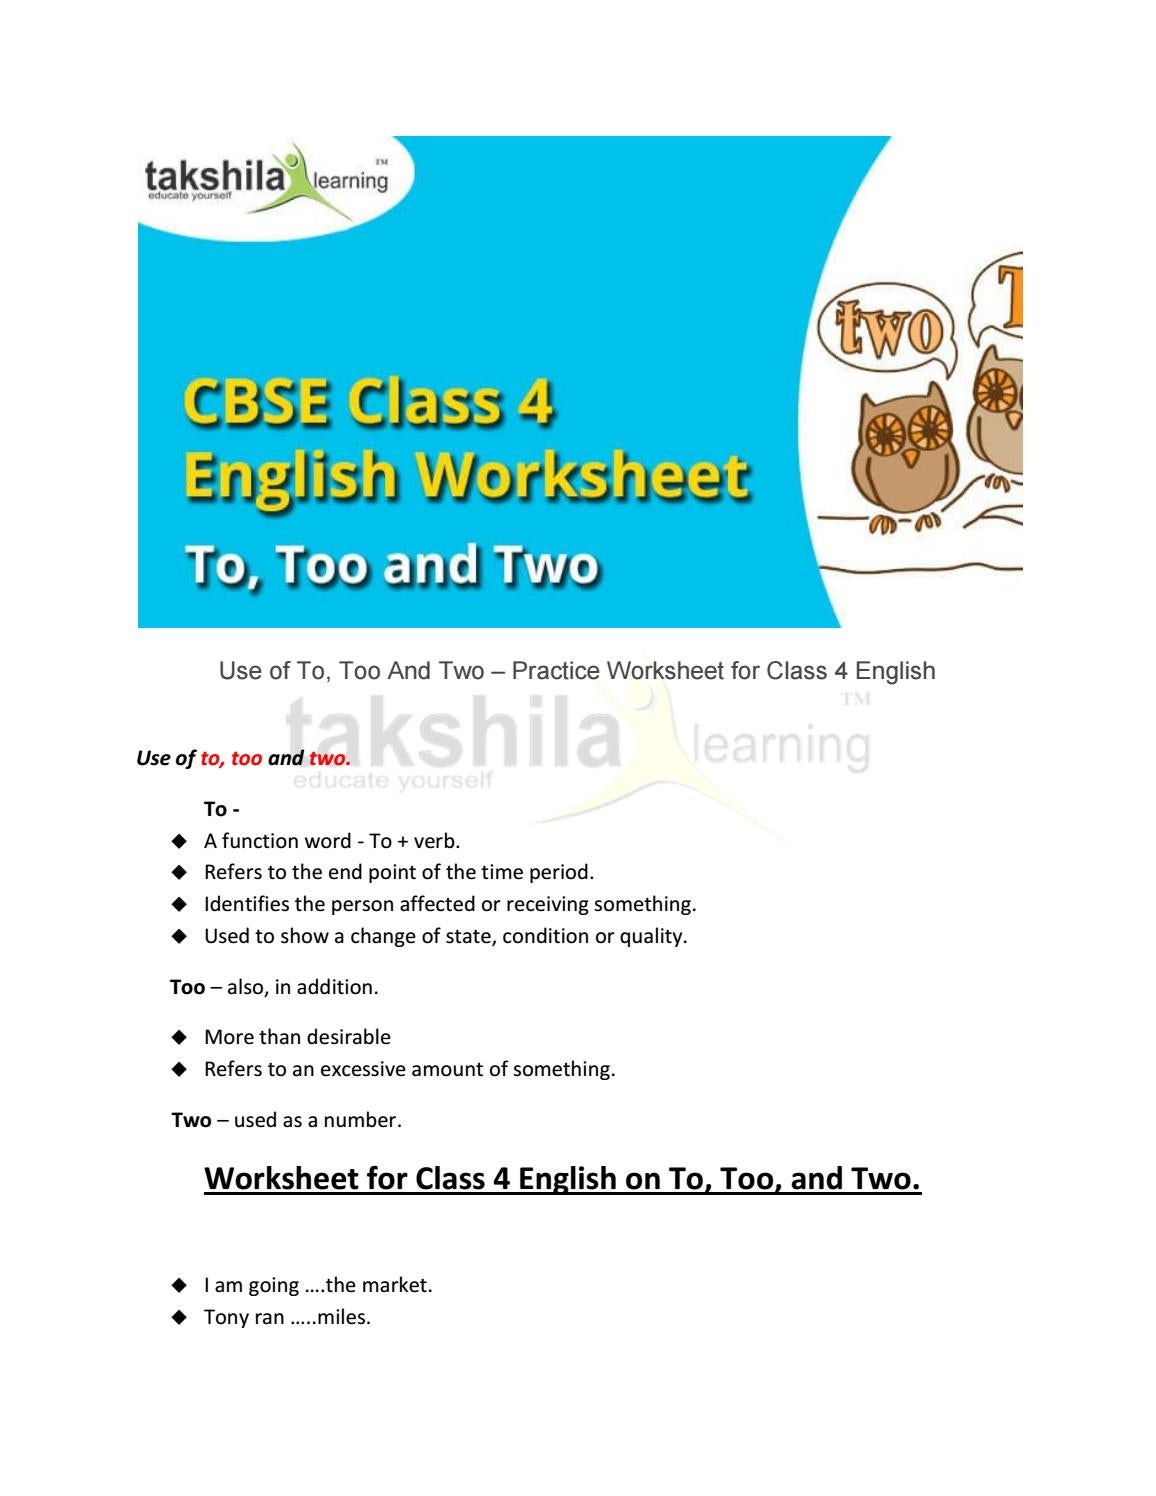 4th class english use of to, too and two practice worksheet for ...